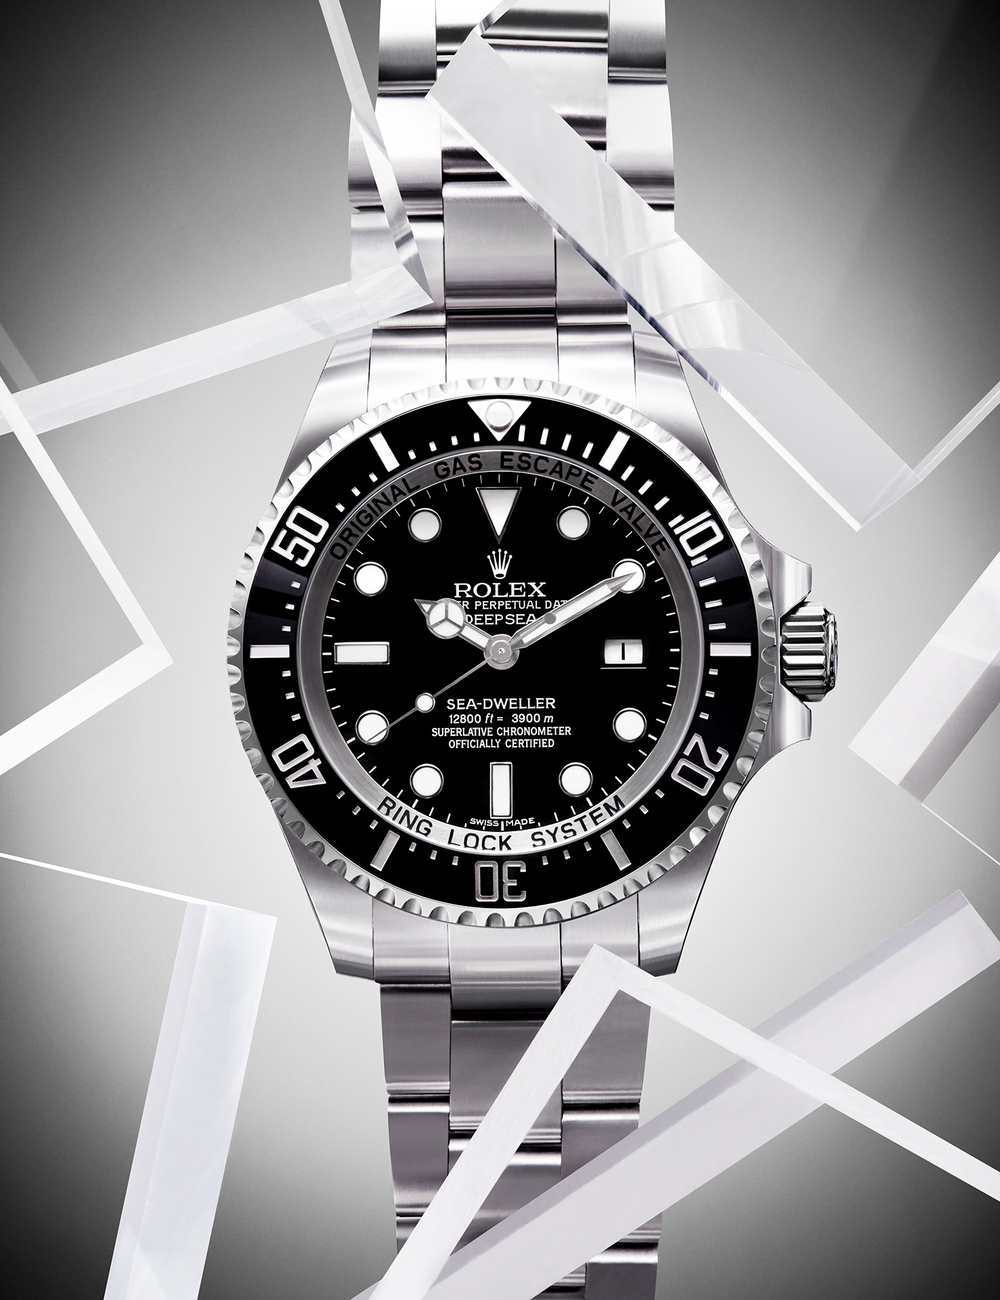 watch-photography-london-watch-photographer-josh-caudwell-1-rolex.jpg